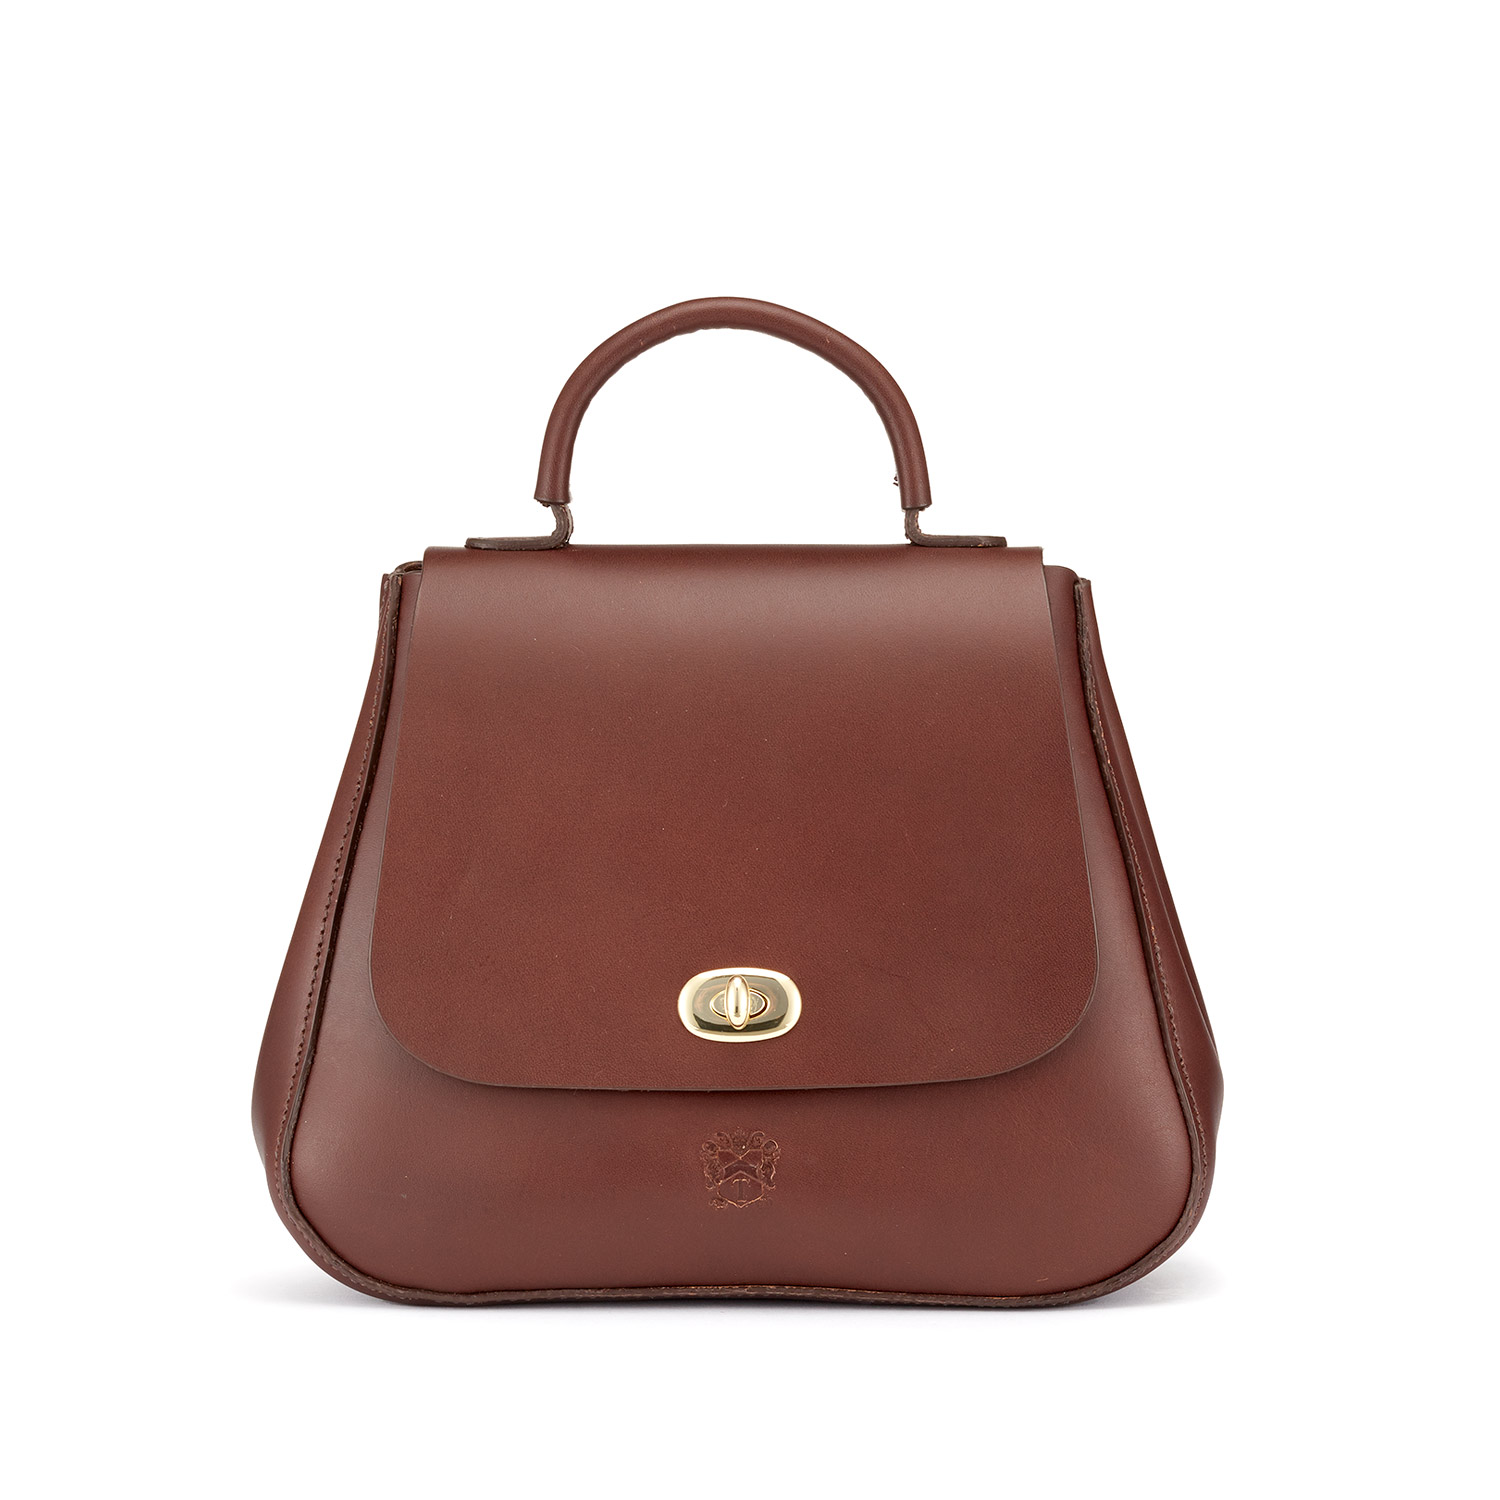 Tusting Holly Leather Top-Handled Handbag in Chestnut